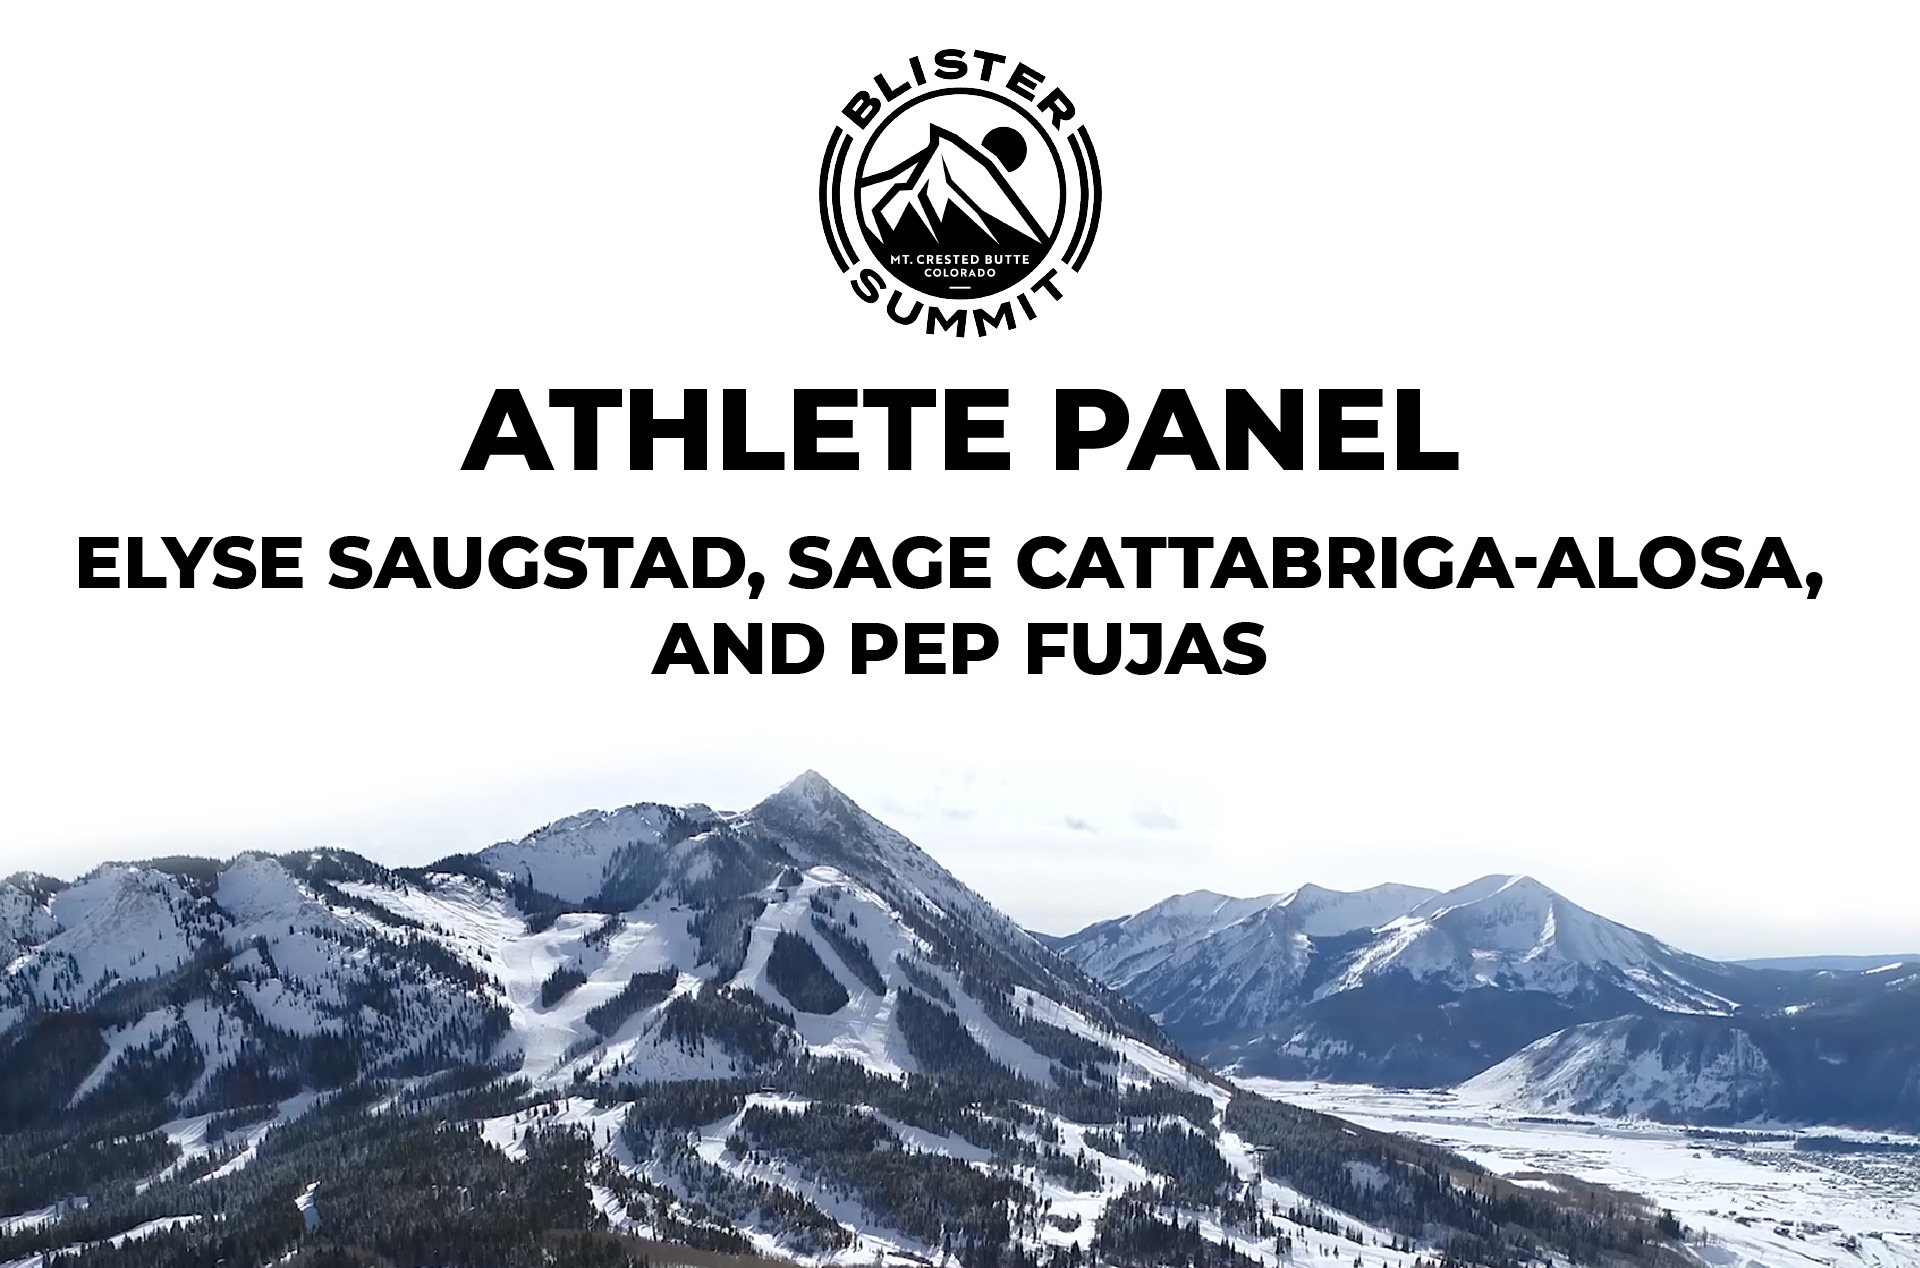 At our Blister Summit, we talked to Elyse Saugstad, Sage Cattabriga-Alosa, and Pep Fujas about this unusual ski season; the evolution of the ski industry; their best advice to aspiring pros; thoughts on ski gear; and more.